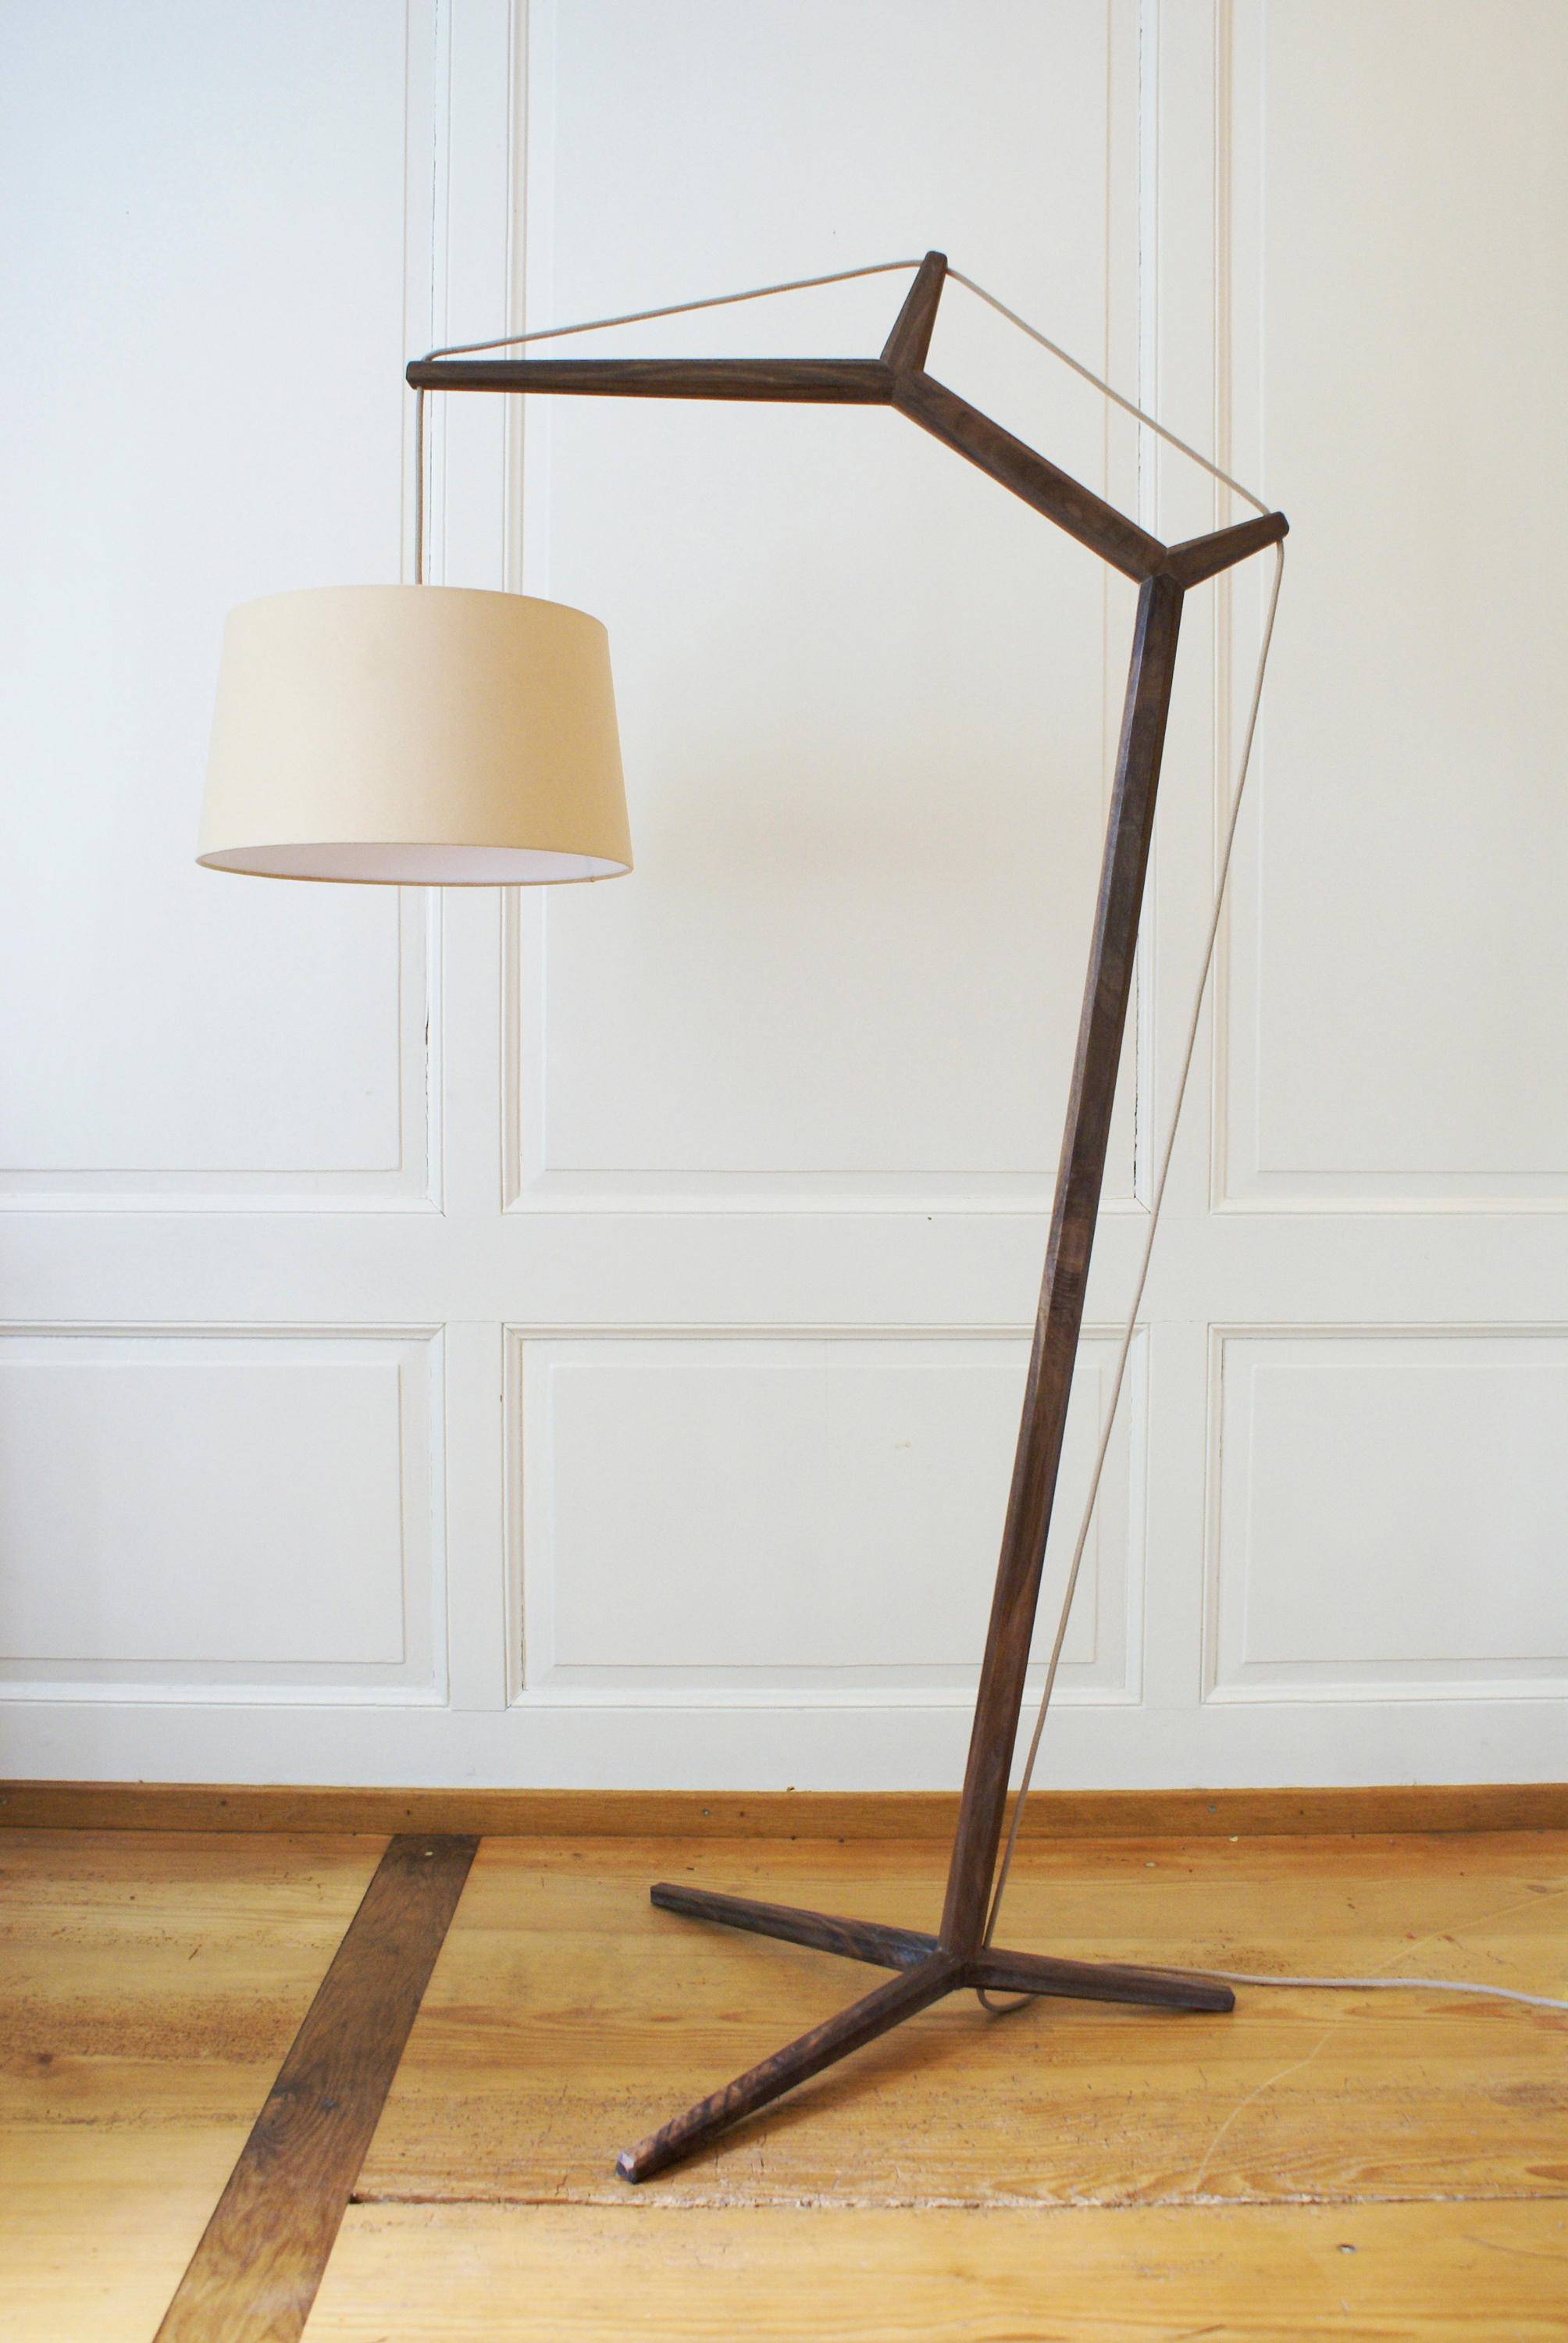 Puu Floor Lamp General Lighting From Mhpd Architonic